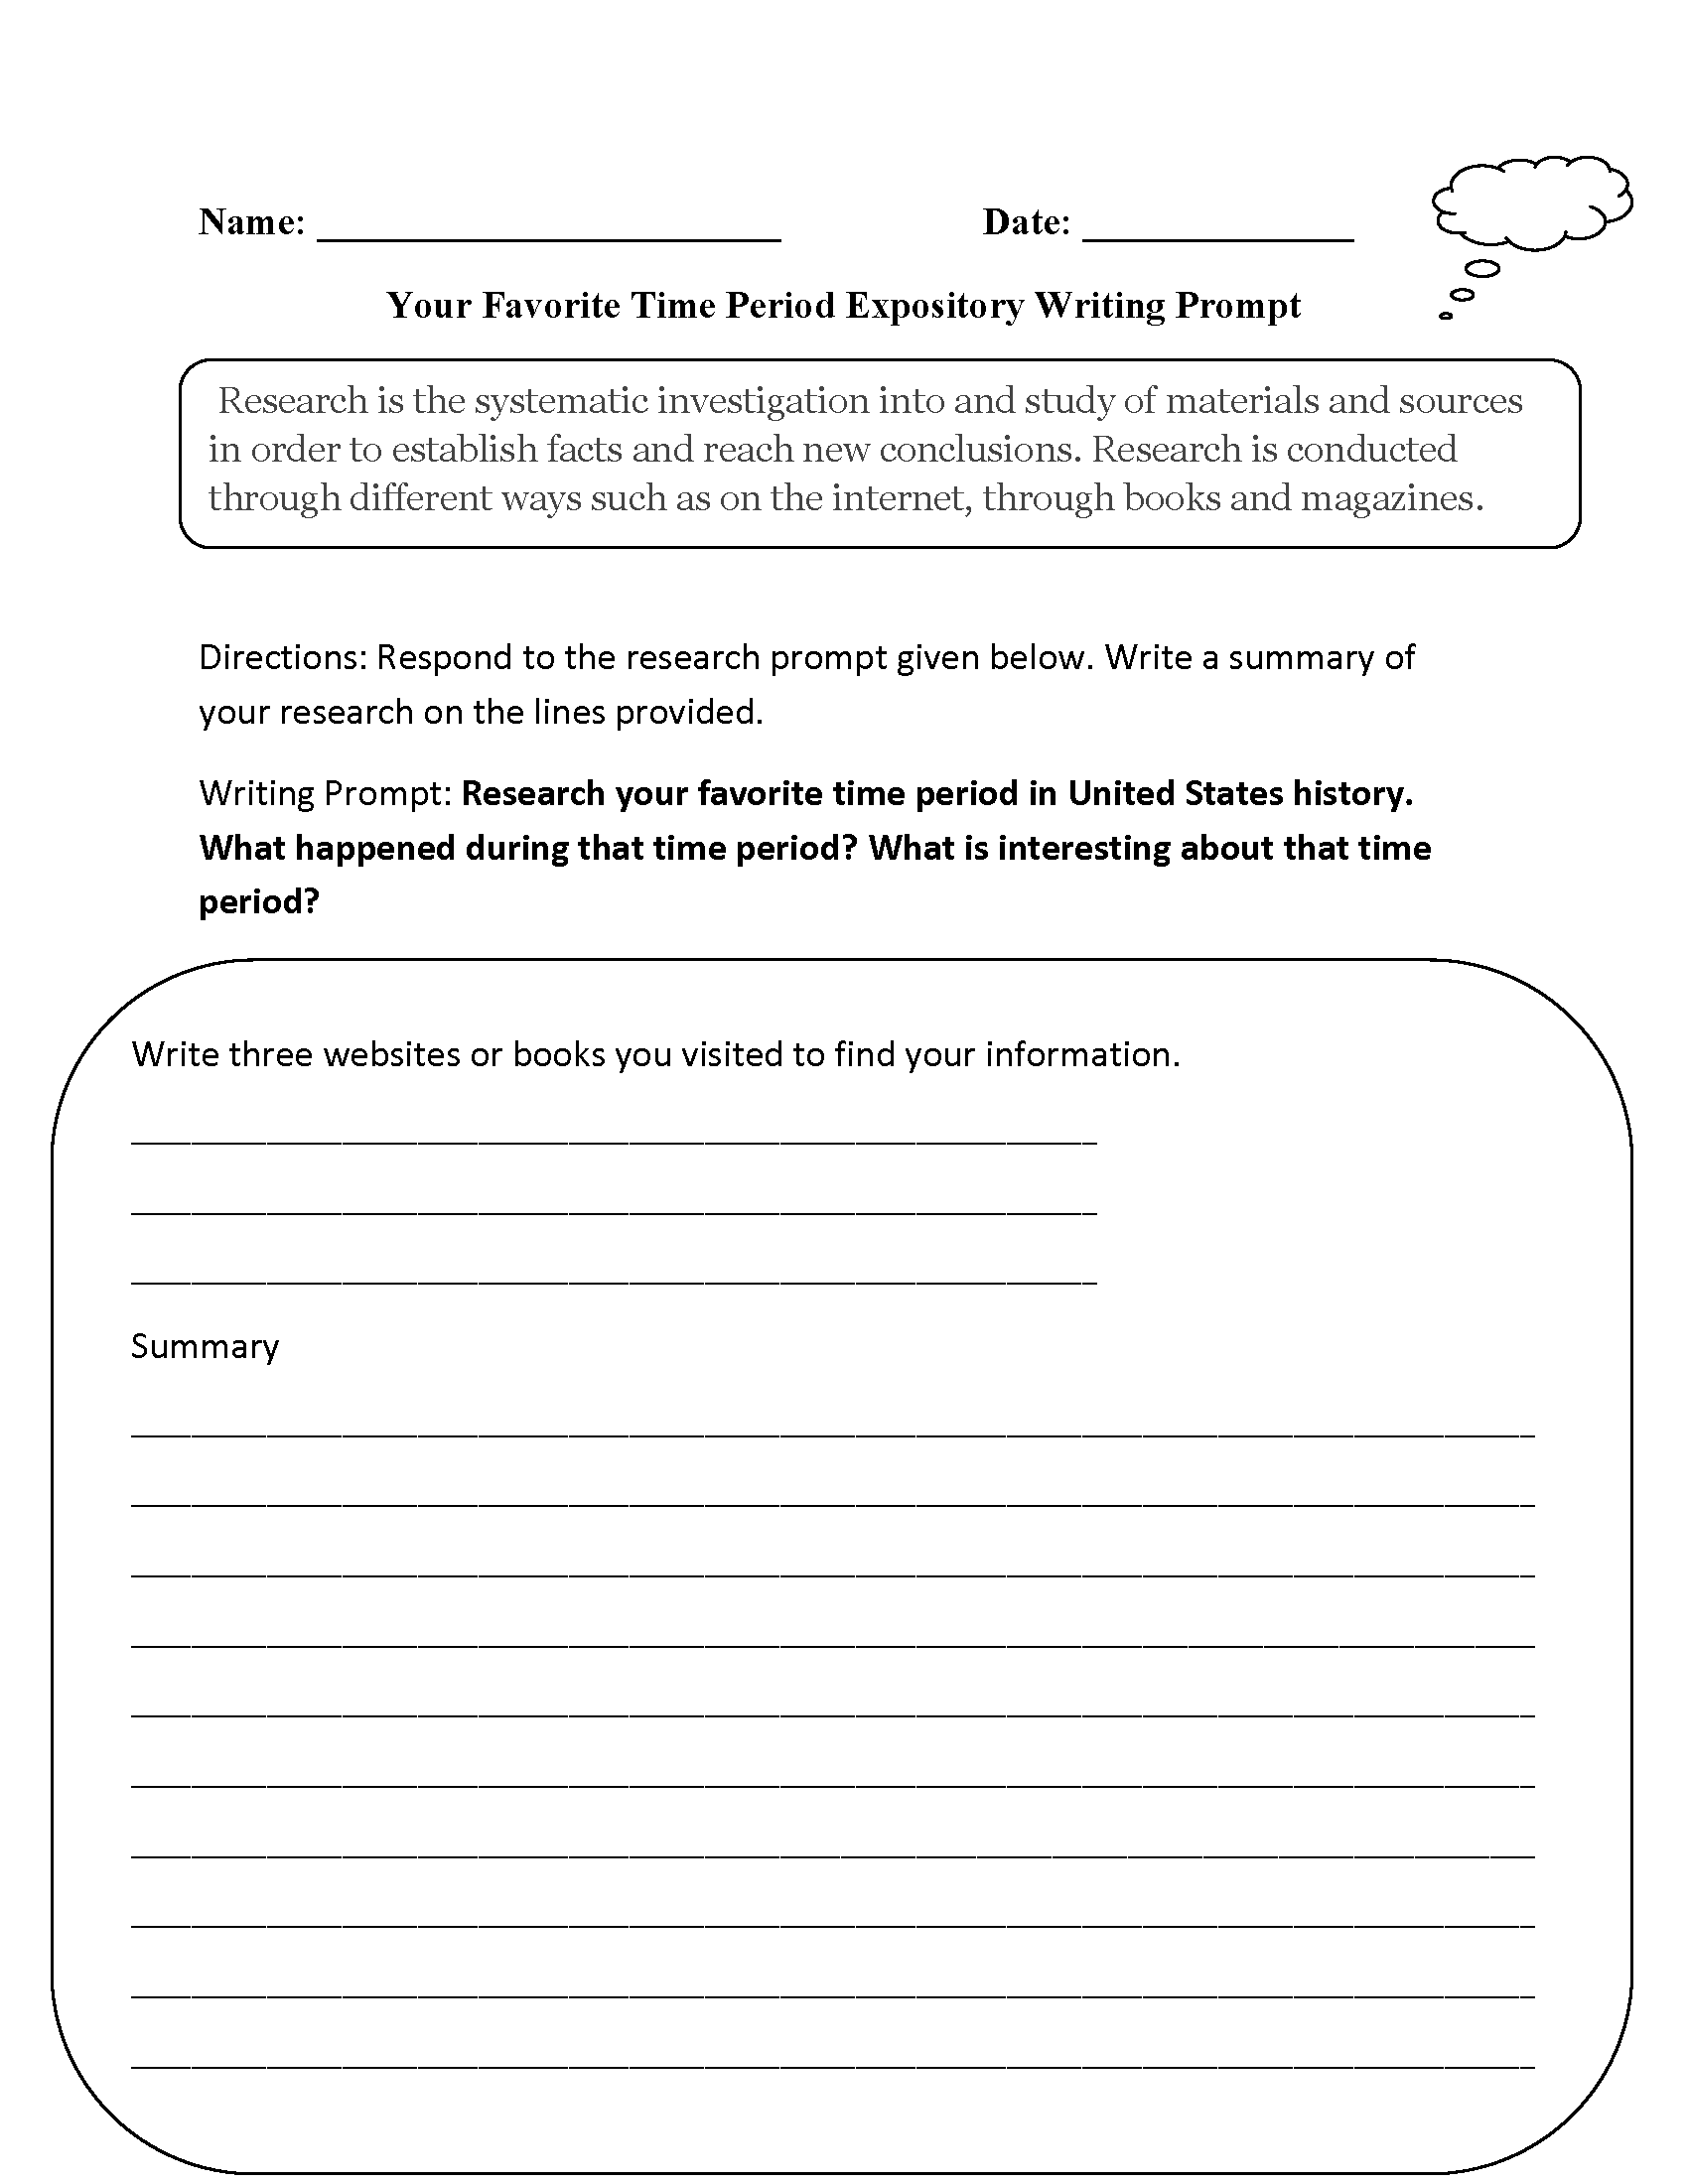 essay expository prompt Grade 7 writing expository prompt texas education agency overall, the writer's confused response to the expository task causes the essay to be insubstantial.